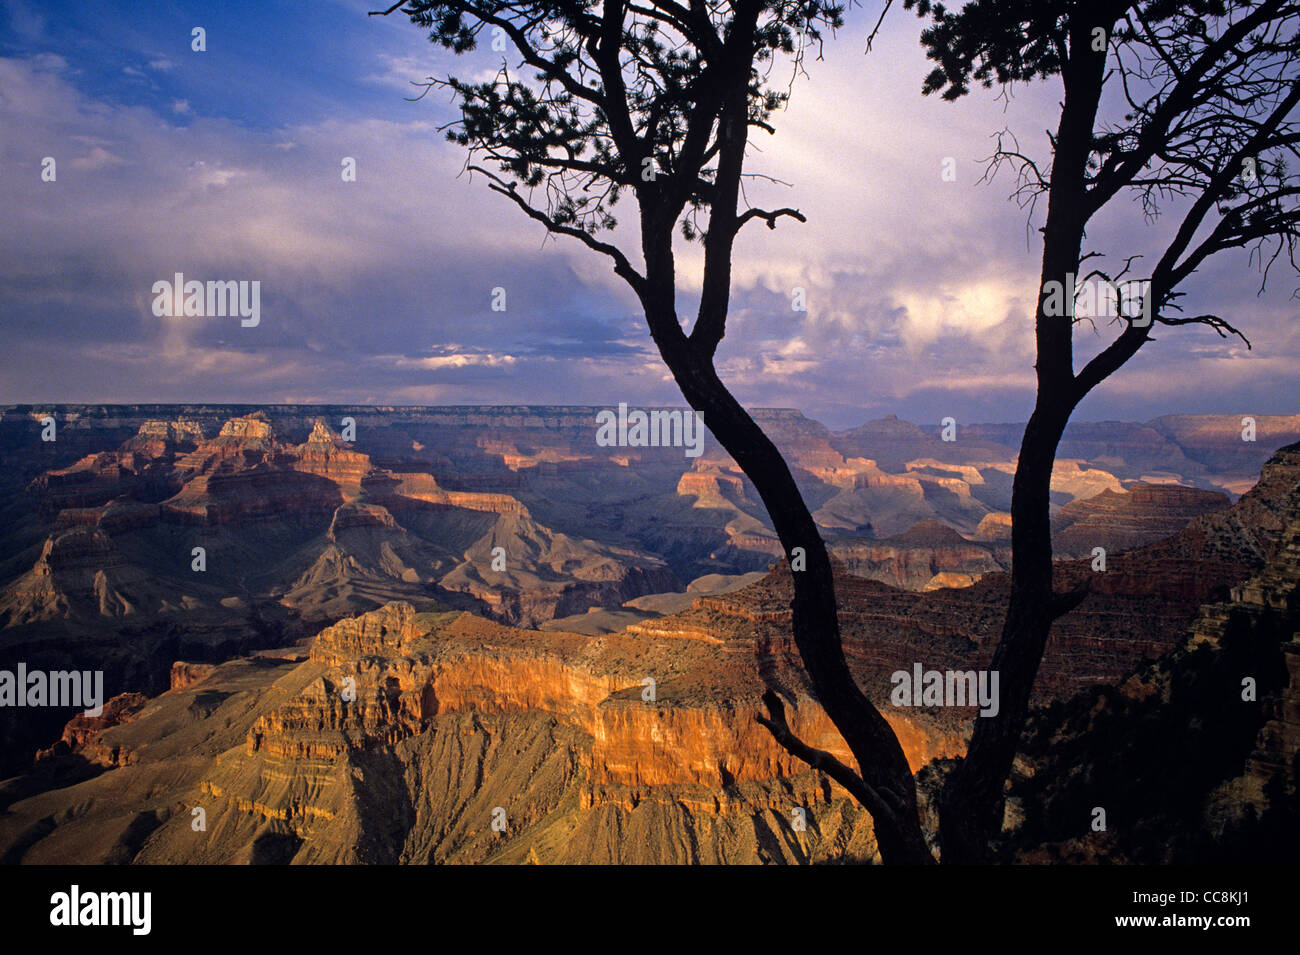 South Rim Grand Canyon taken near Yavapai Point sunset light on rock formations evening light with silhouetted tree Stock Photo